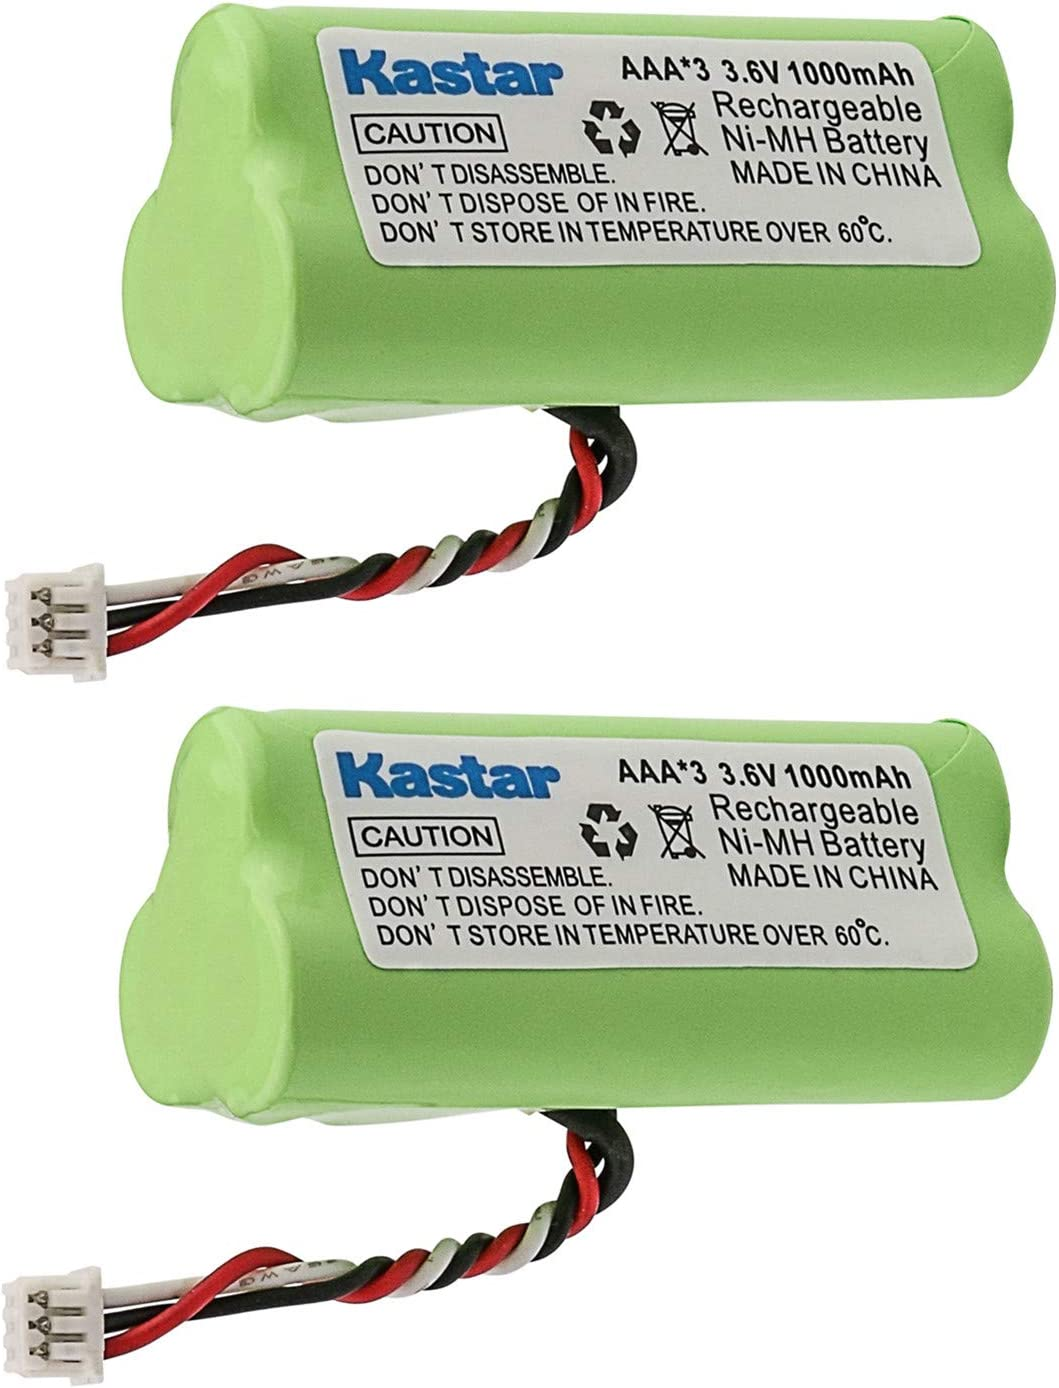 Kastar 2-Pack AAA 3.6V 1000mAh Ni-MH Rechargeable Battery Replacement for Zebra/Motorola Symbol 82-67705-01 Symbol LS-4278 LS4278-M BTRY-LS42RAAOE-01 DS-6878 Cordless Bluetooth Laser Barcode Scanner